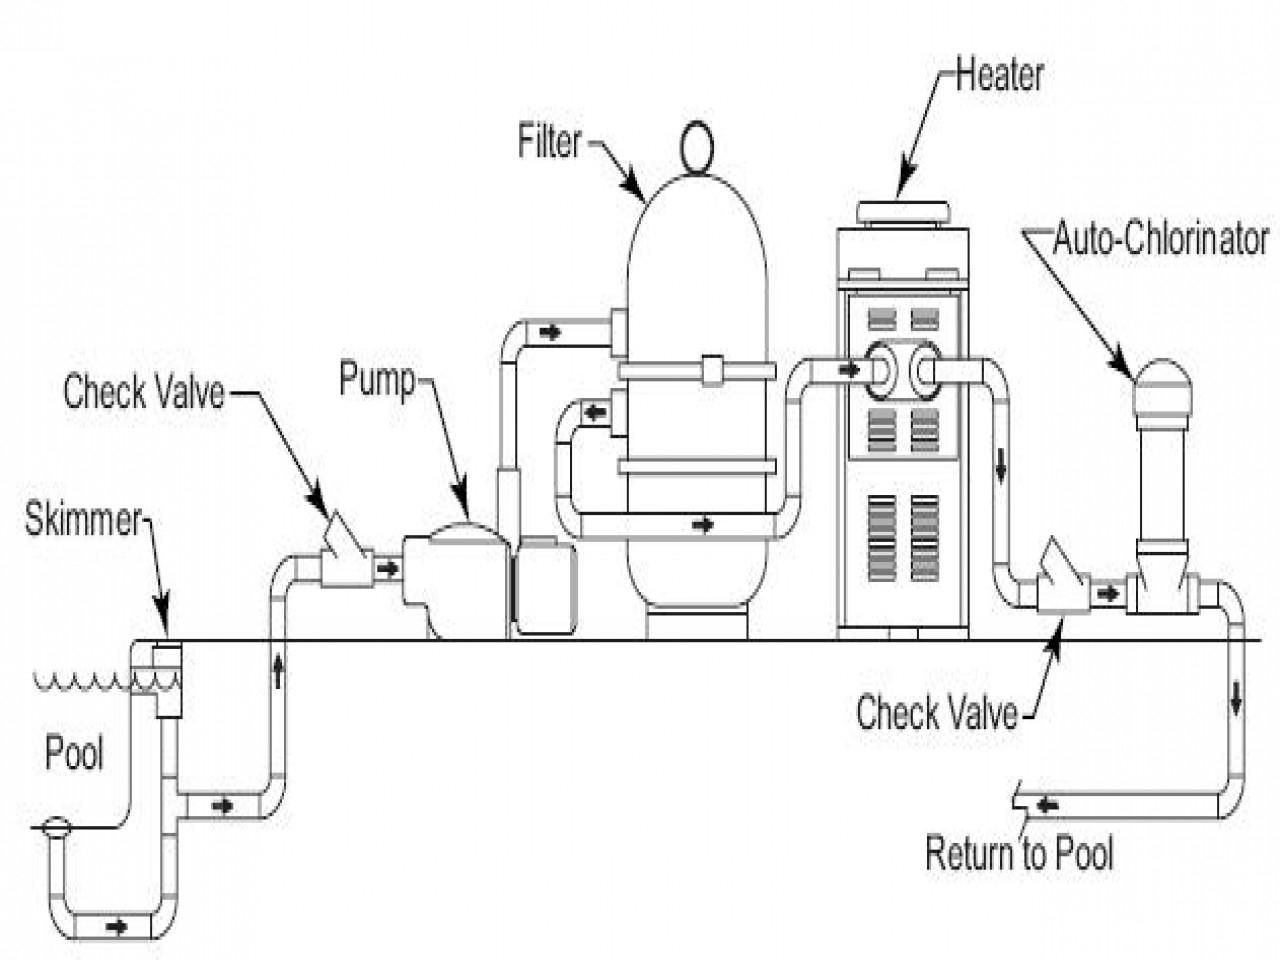 Wiring Diagram For Hayward Pool Pump 115v